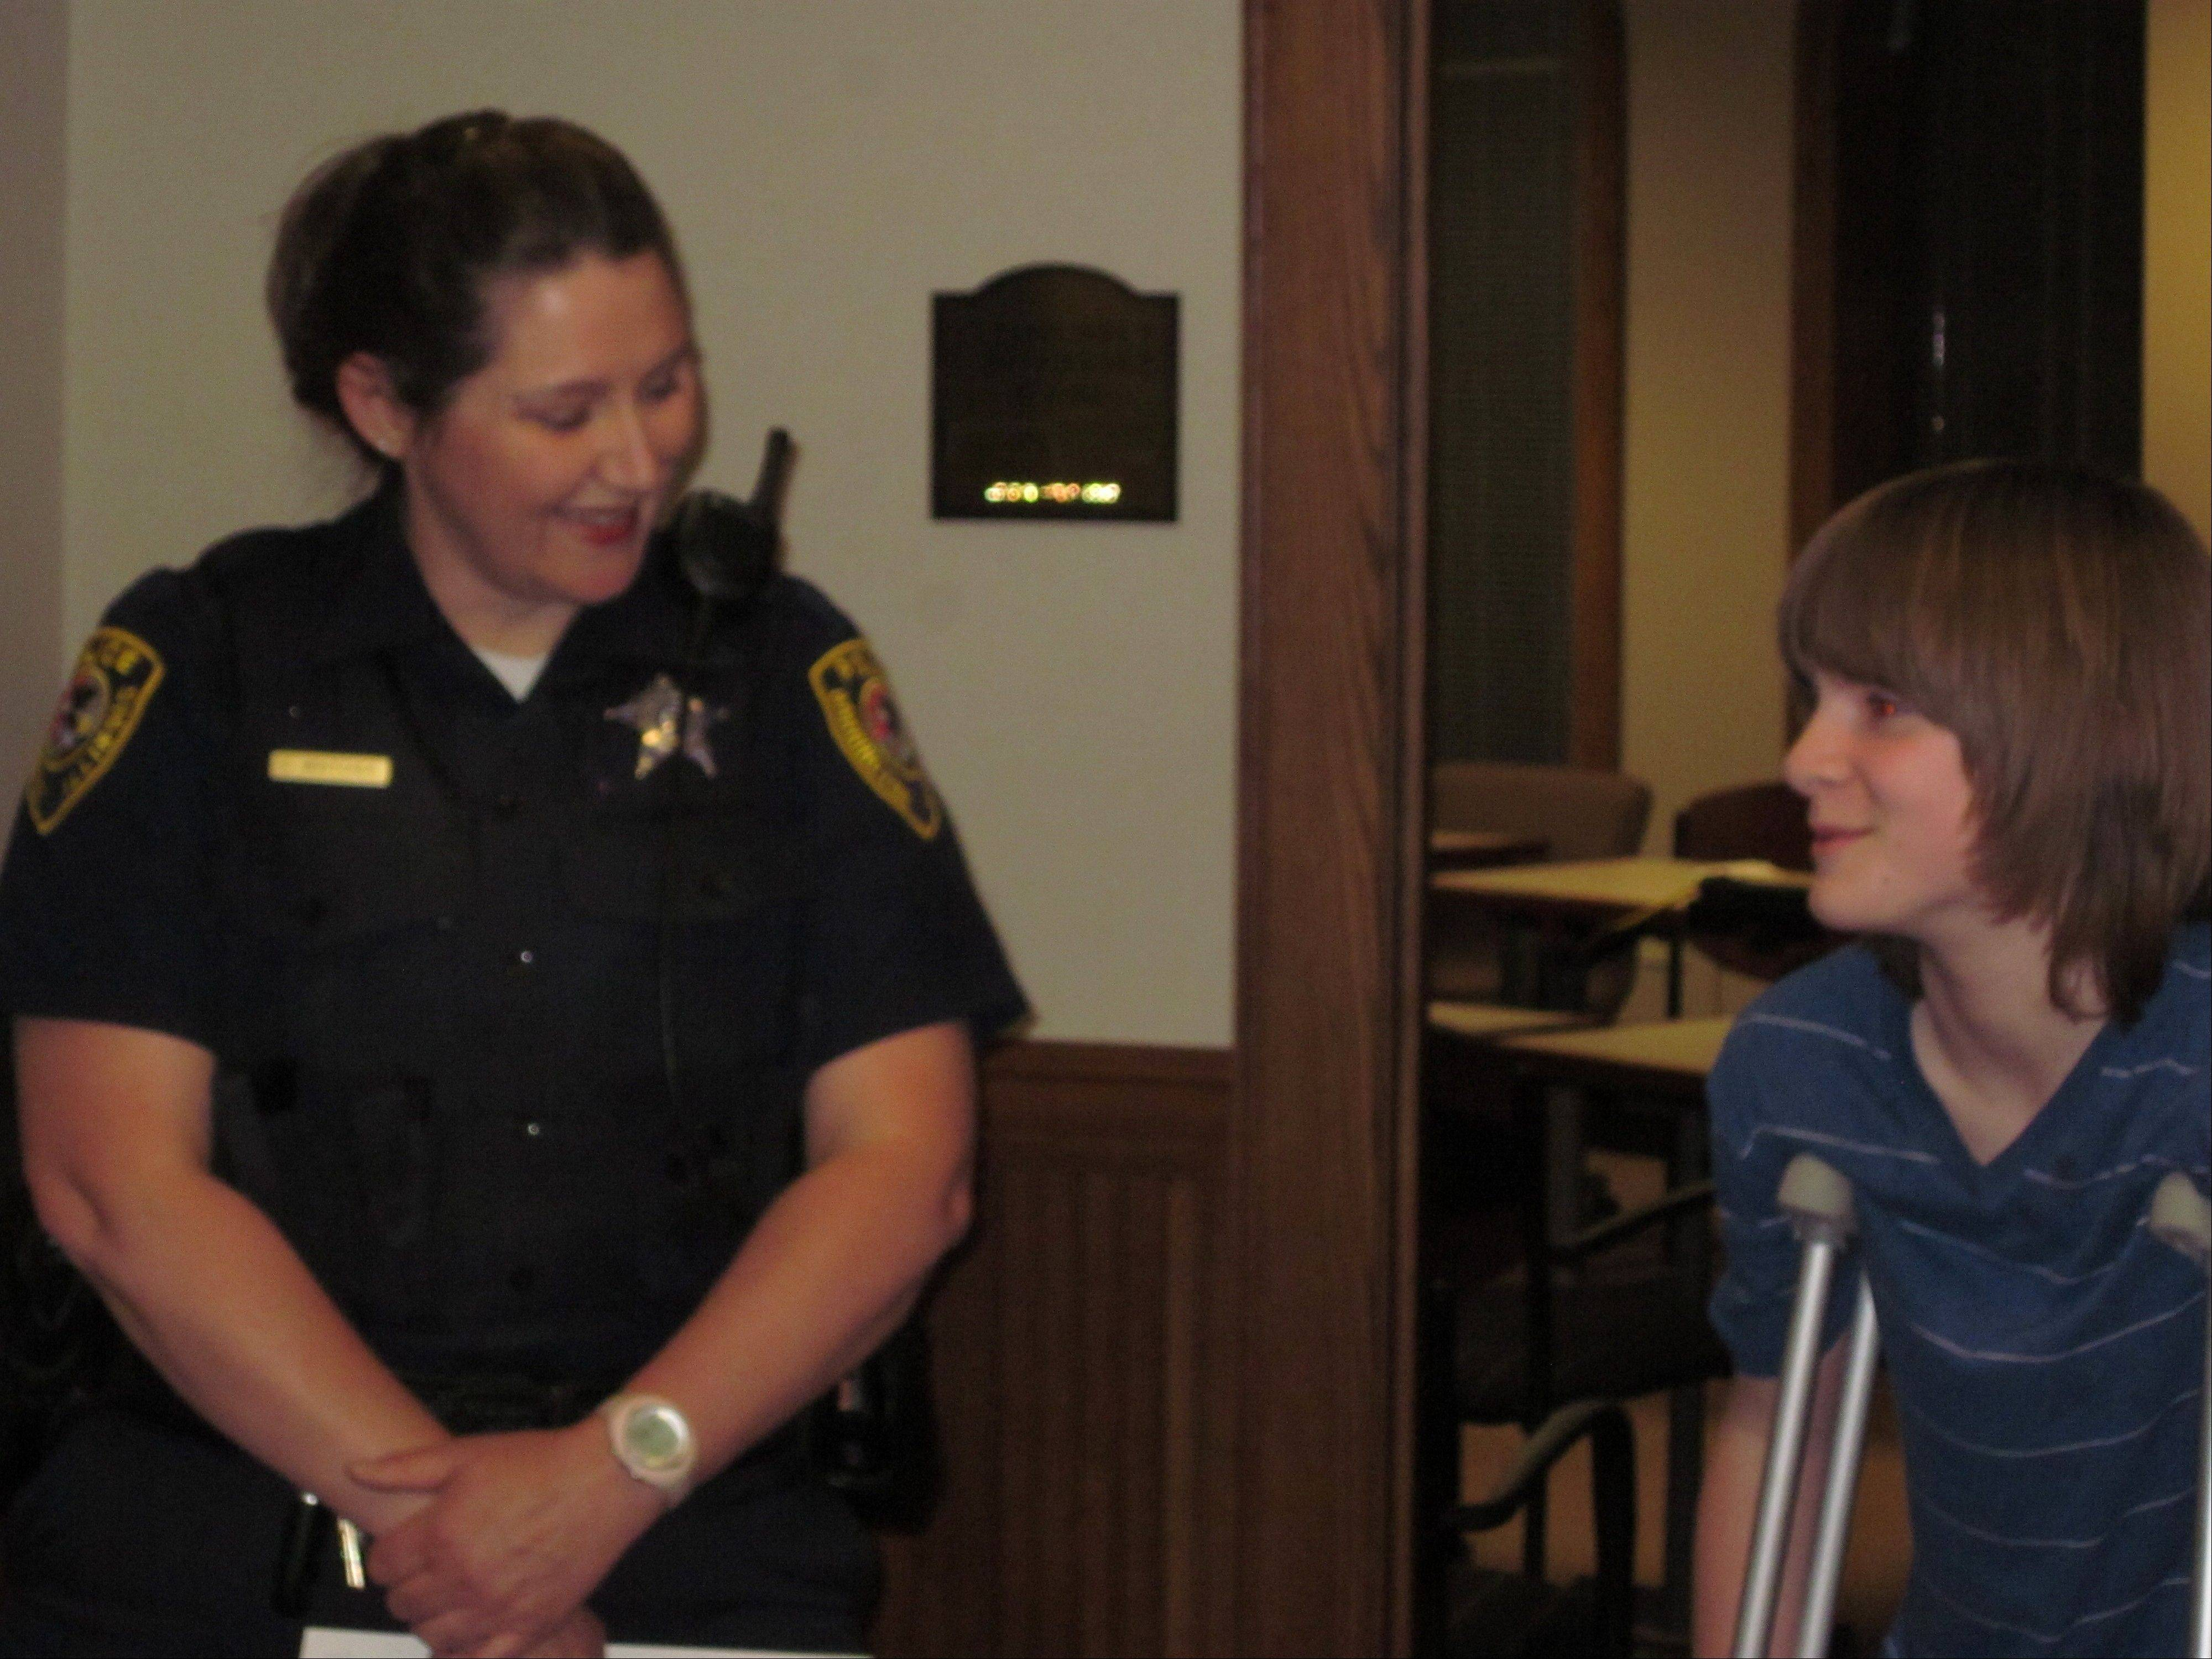 Dominic Szymanski, 11, speaks Monday night with Barrington police officer Jeniffer Whitcher, who was among the first responders who came to his aid after he was struck by a train March 15.